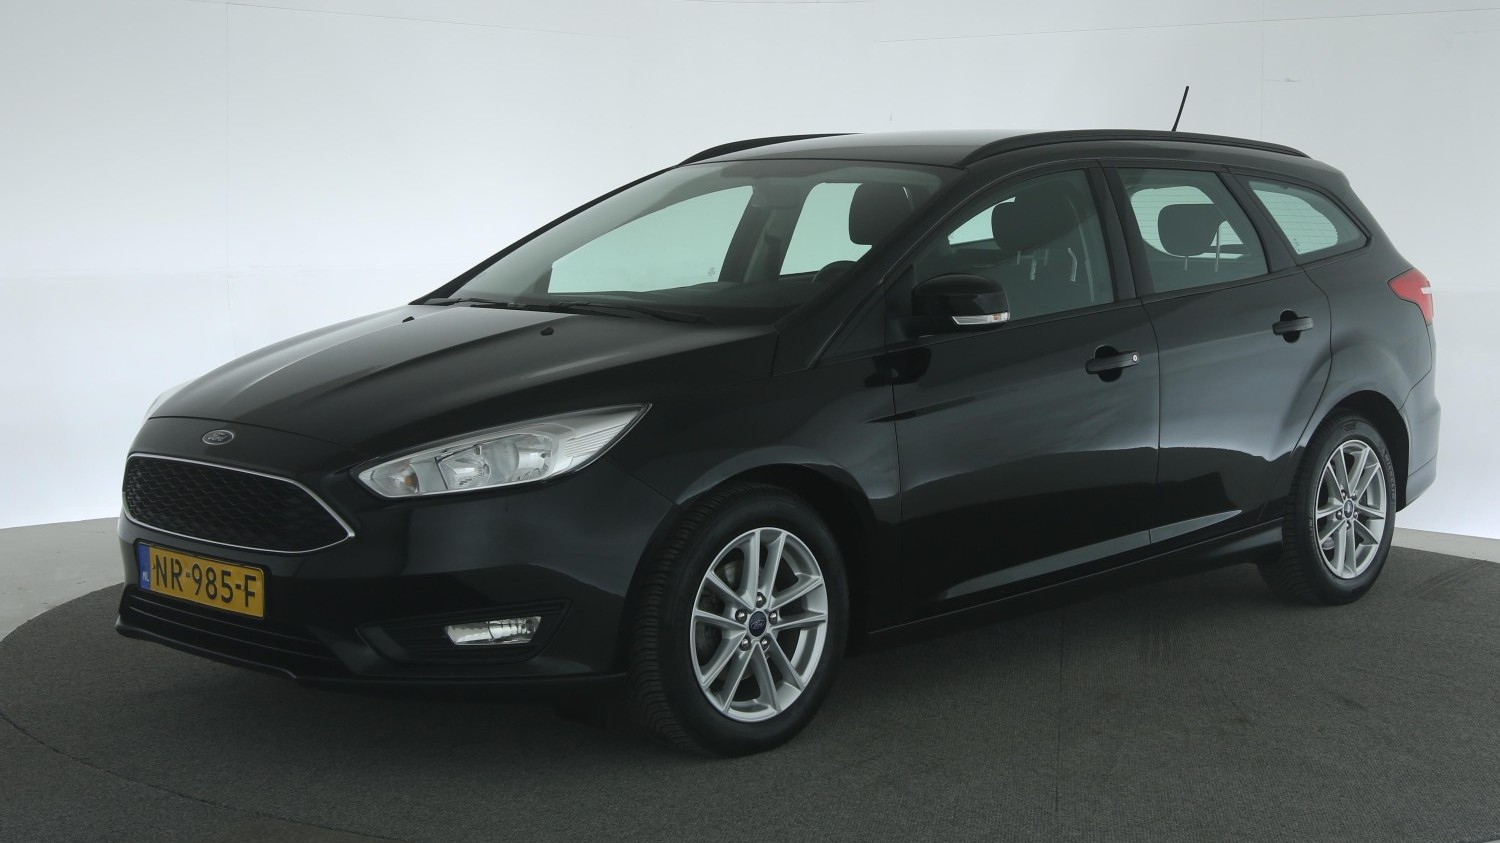 Ford Focus Station 2017 NR-985-F 1